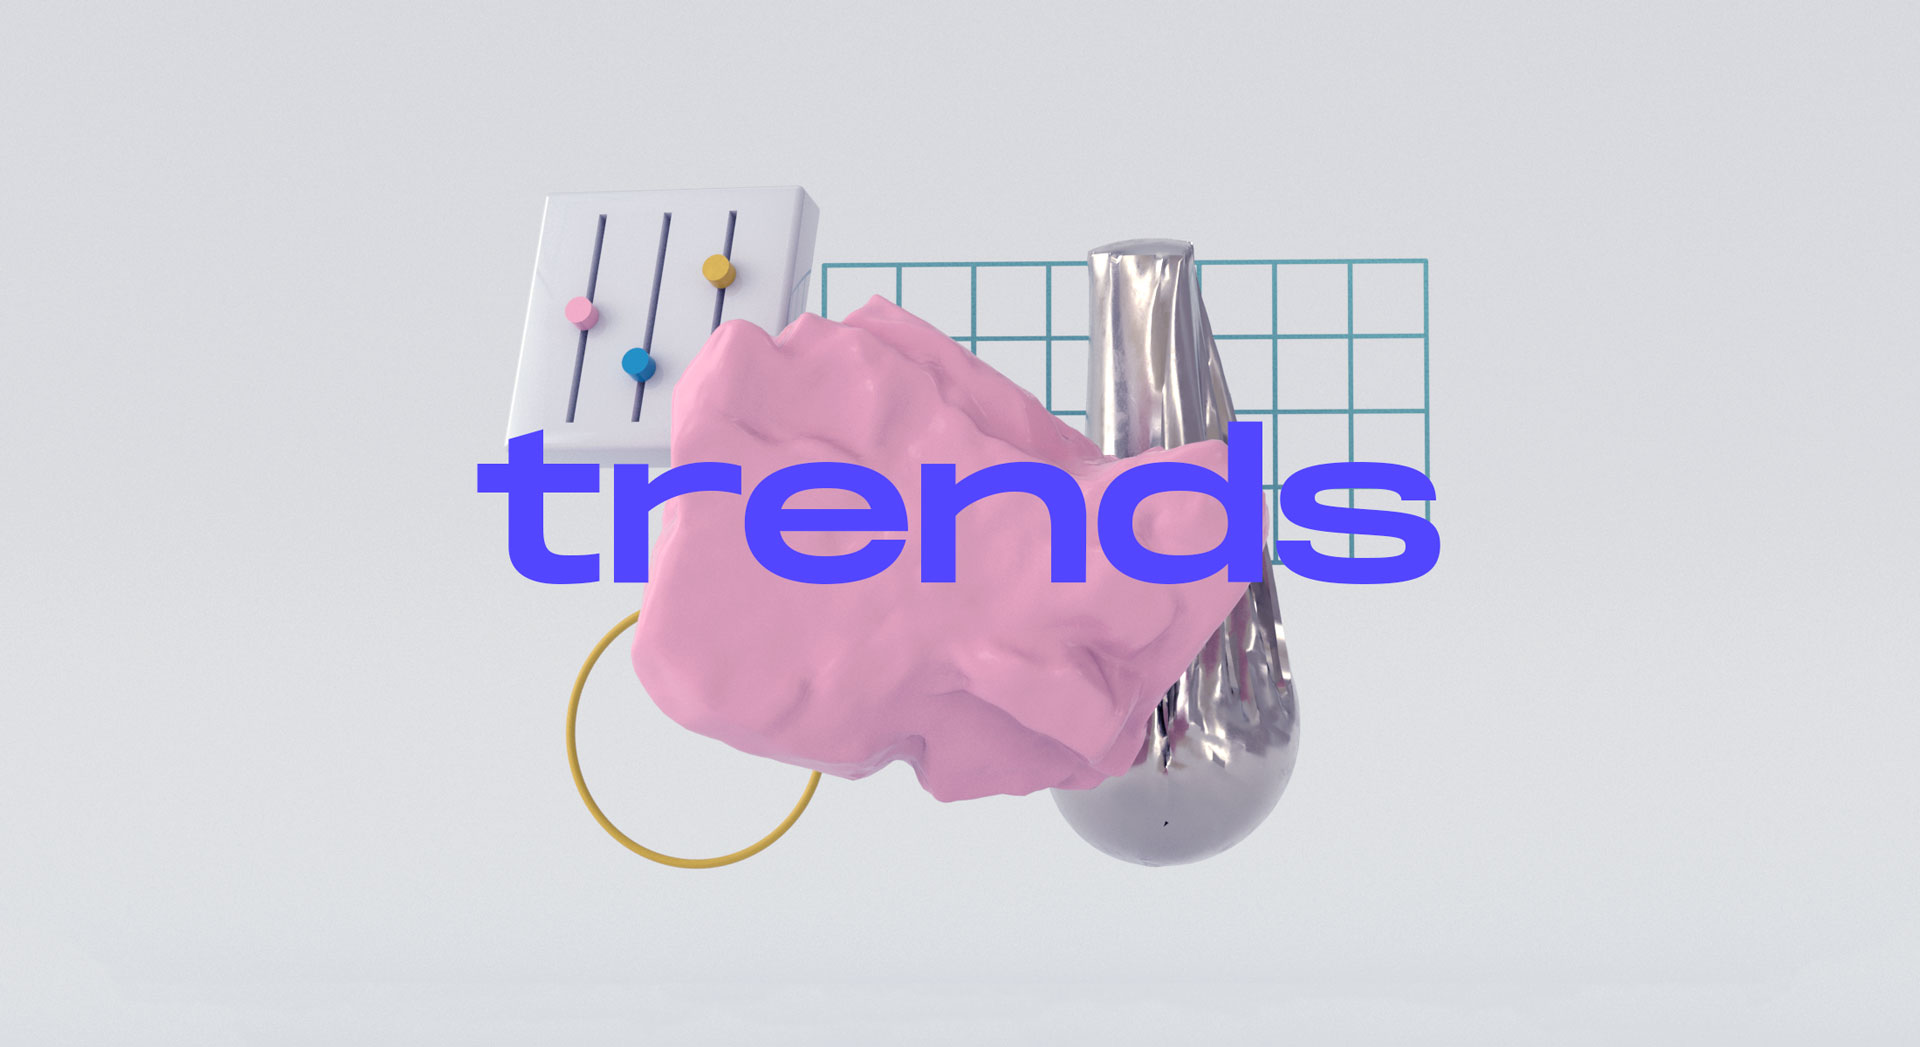 Web Design Trends 2019: Voice Interfaces, Image Search